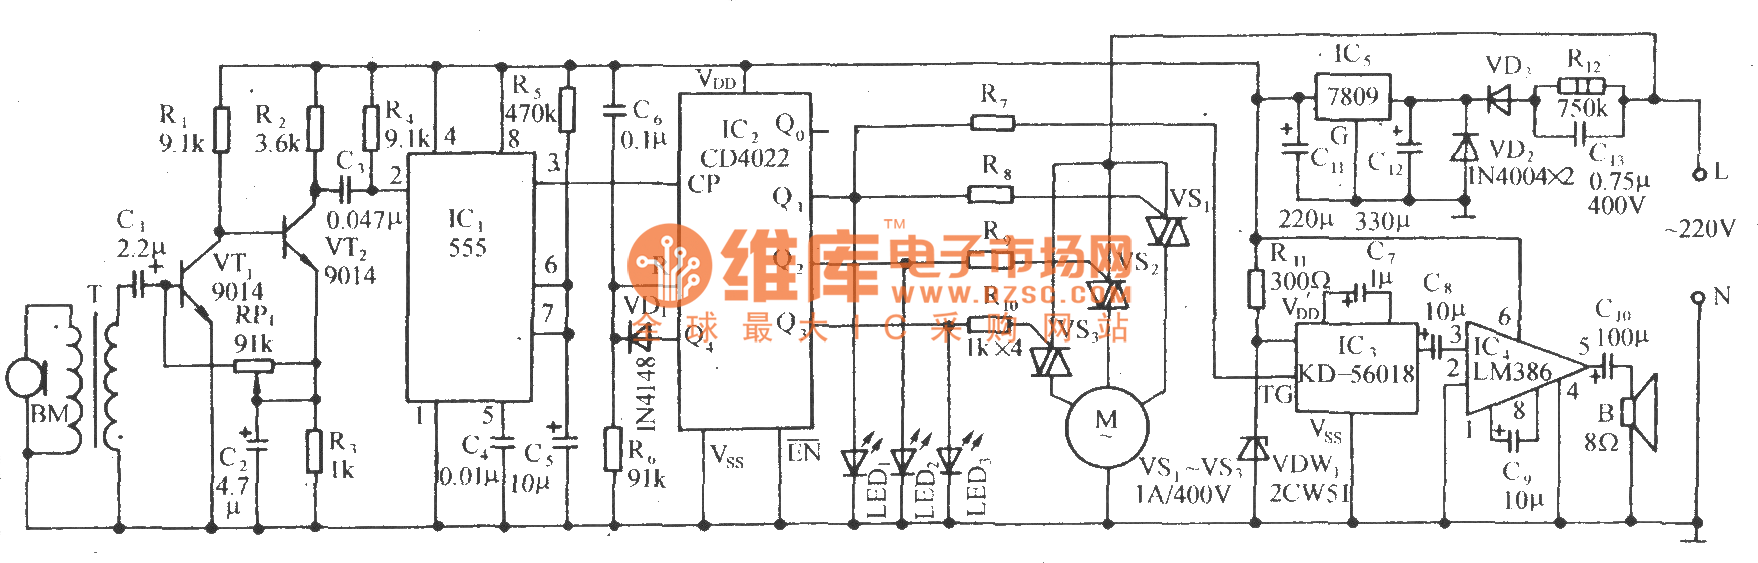 Sound Control Electric Fan Speed Governing And The Cricket Voice Heartratemonitor Controlcircuit Circuit Diagram Seekic